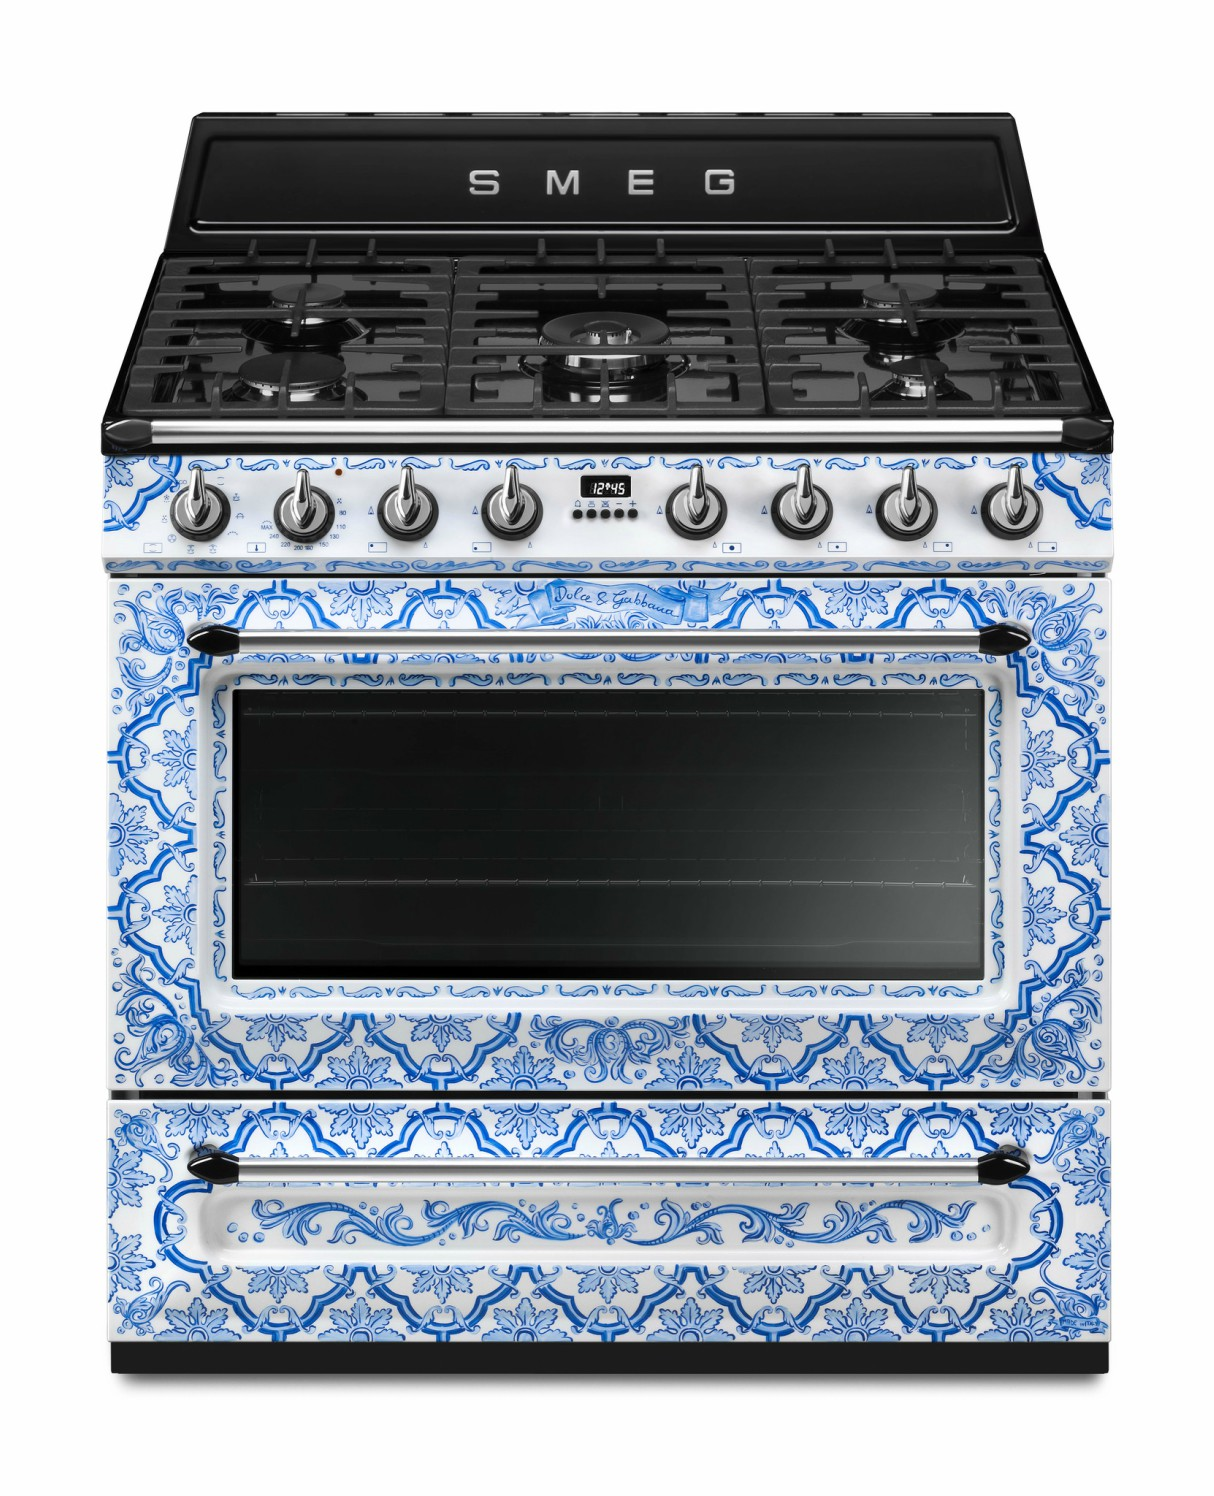 smeg-dolce-gabbana-kitchen-collection-2